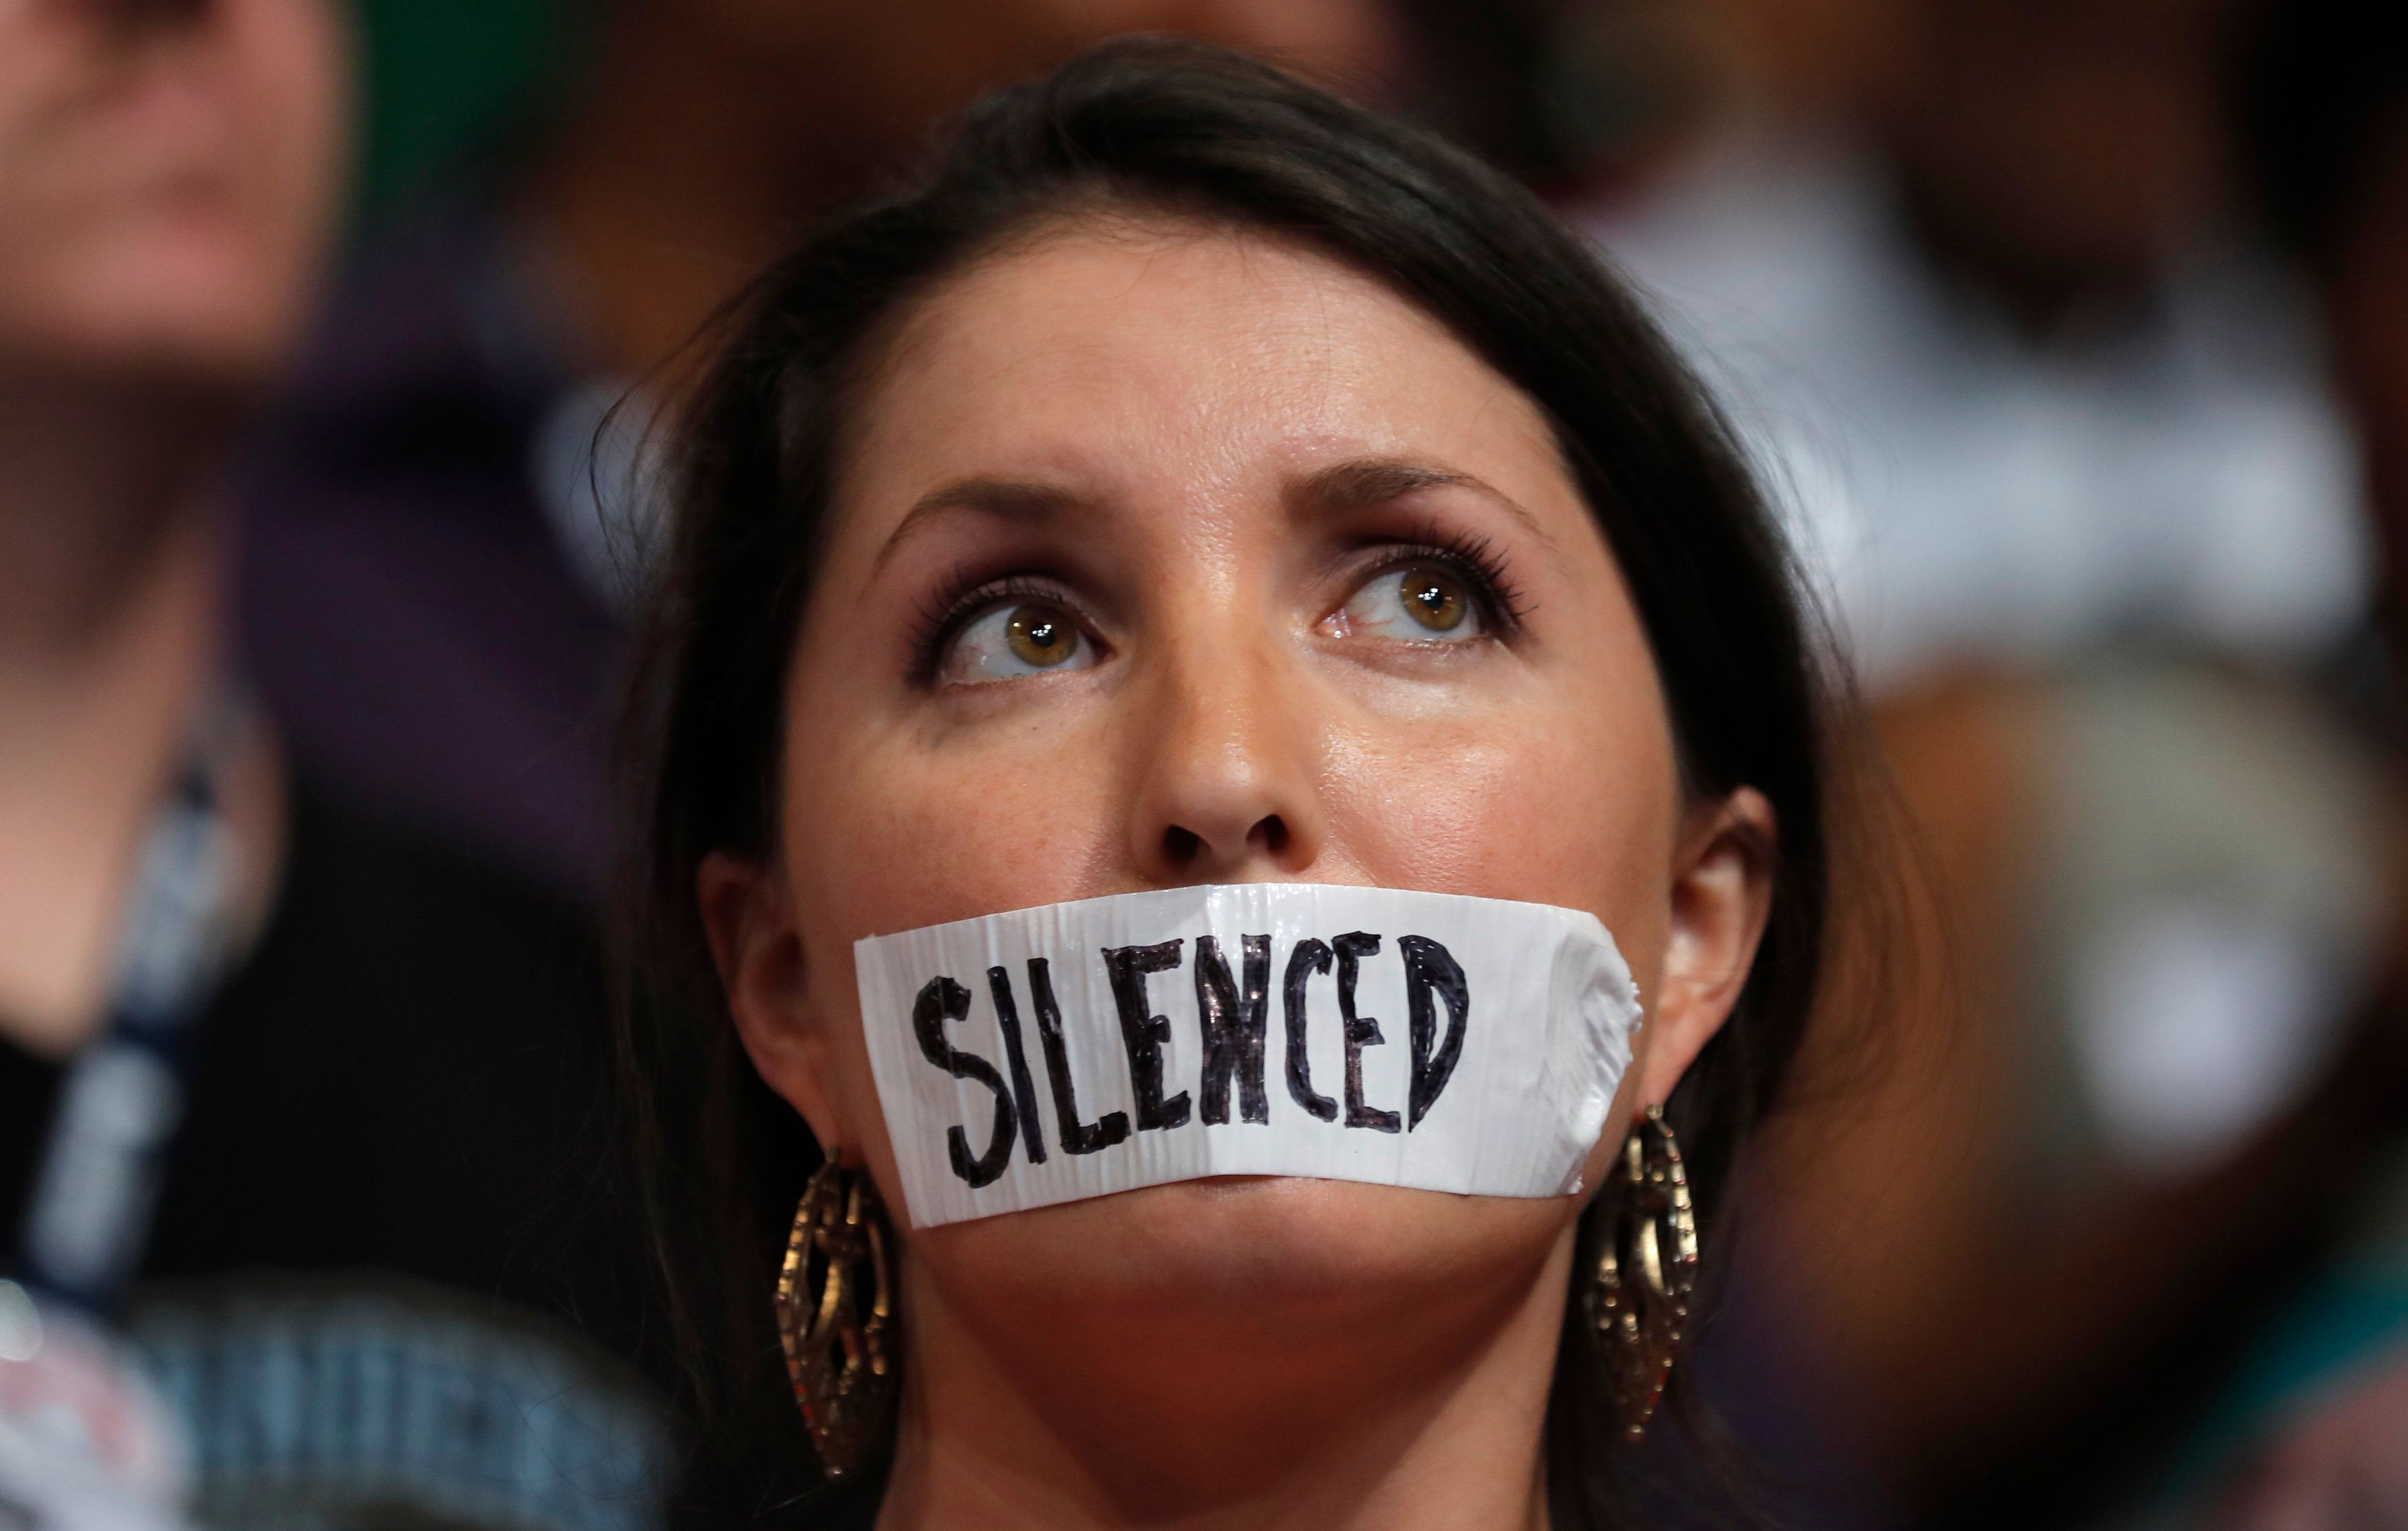 Sexual Assault Survivors Share Why They Stayed Quiet In Powerful #WhyIDidntReport